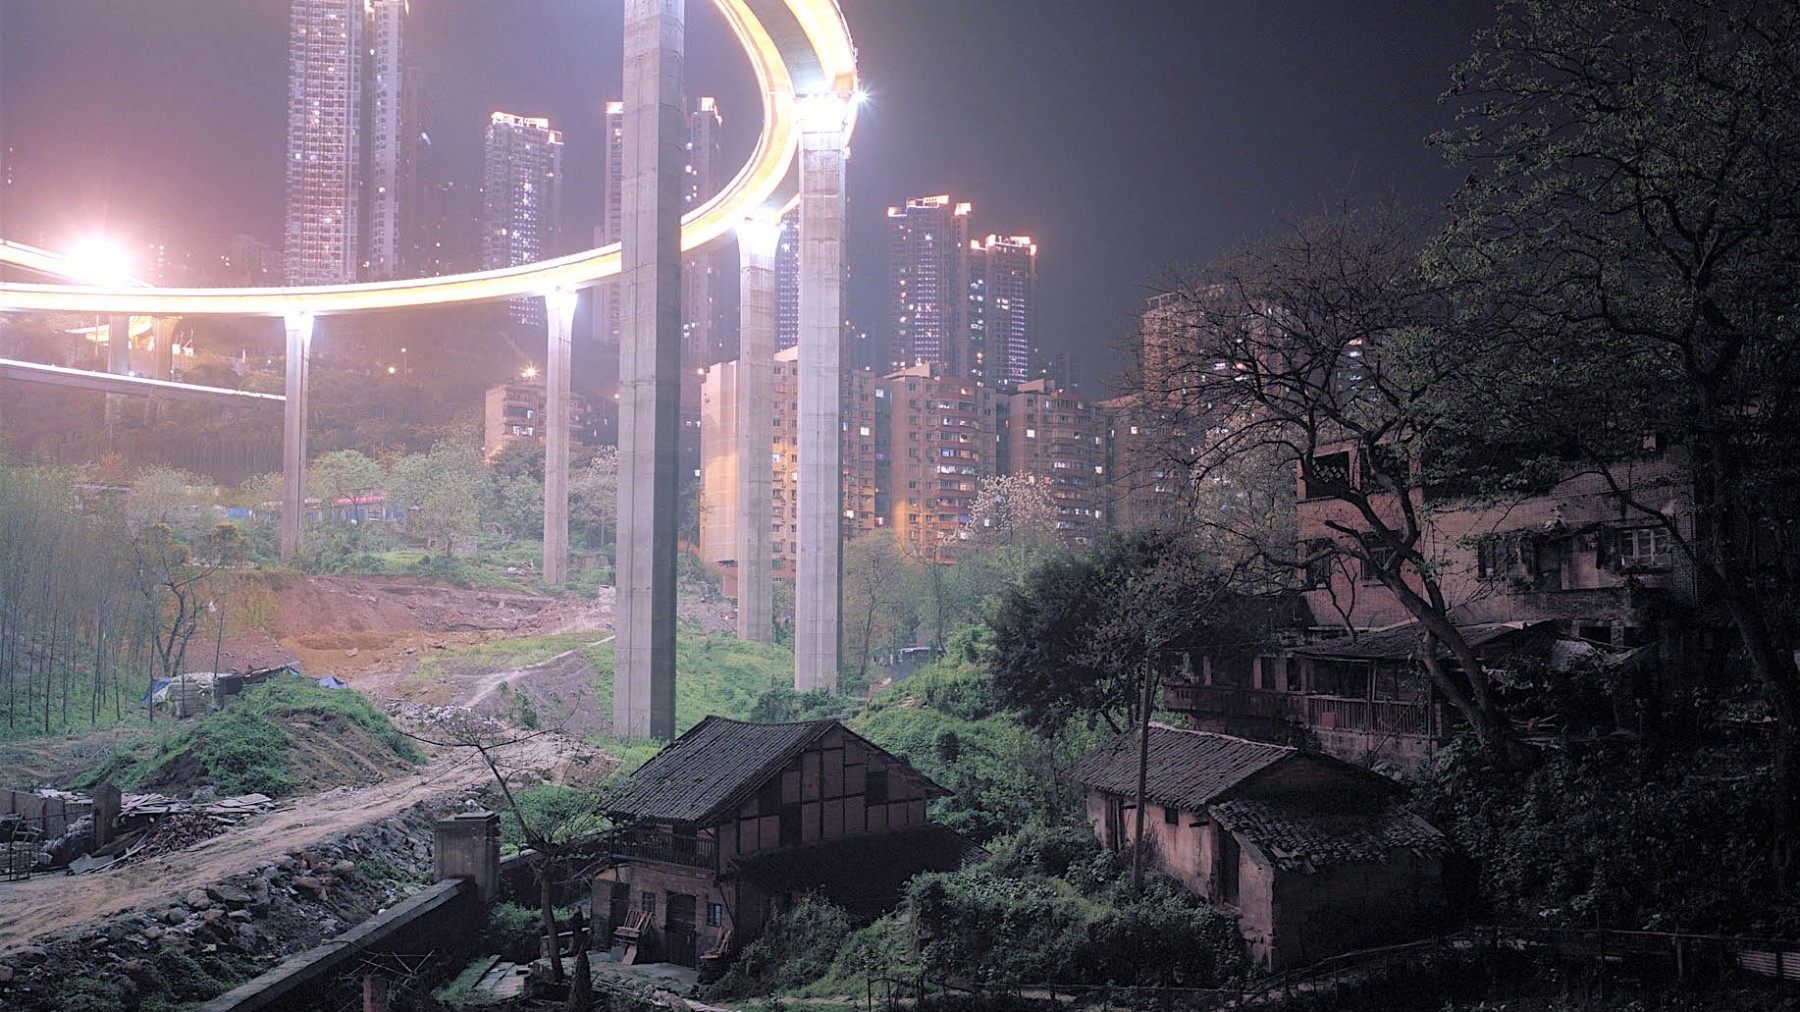 Underneath the Mini Caiyuanba Bridge in China